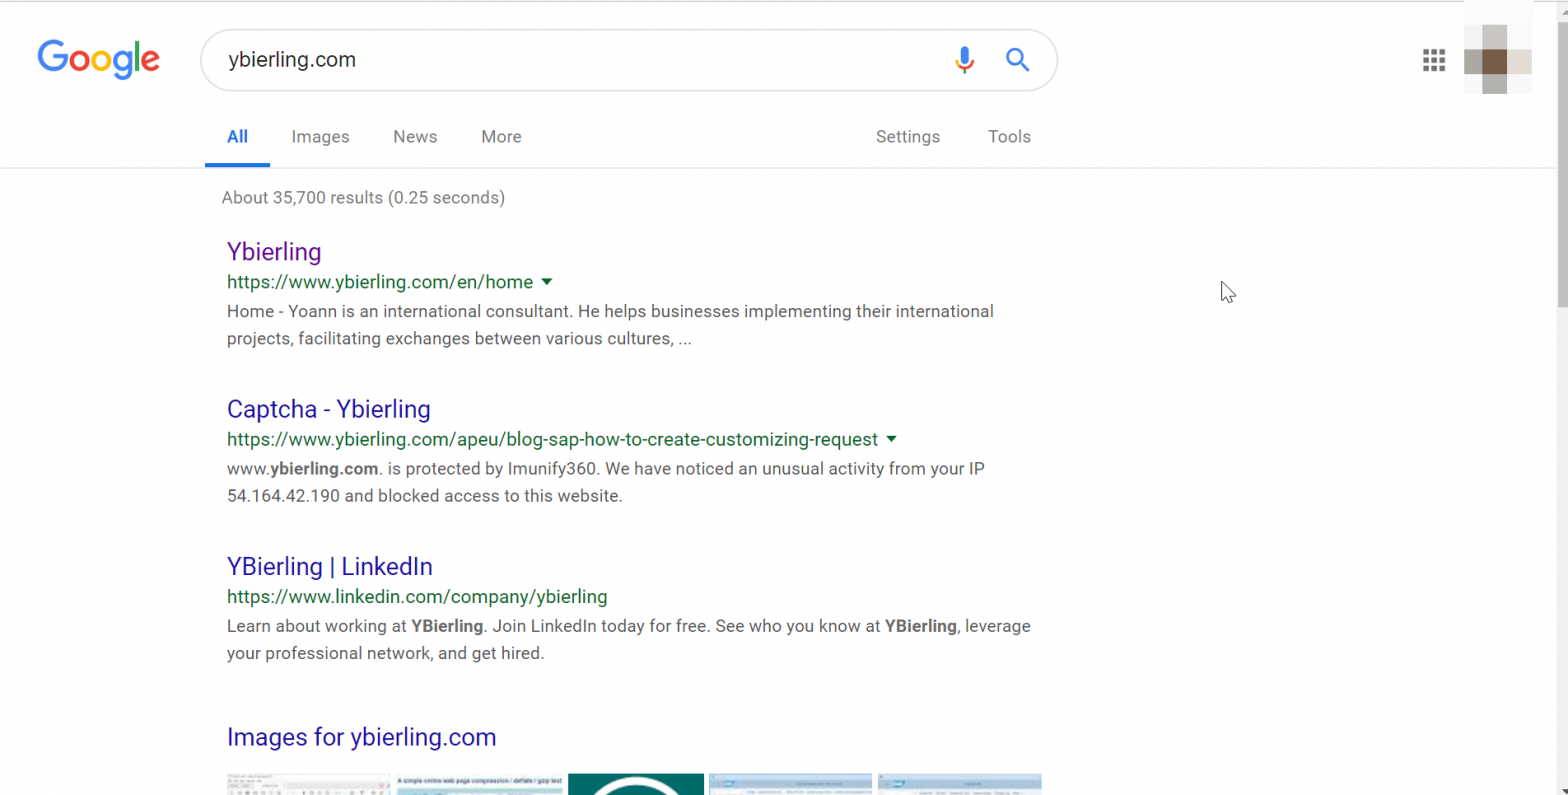 How to change language in Google?